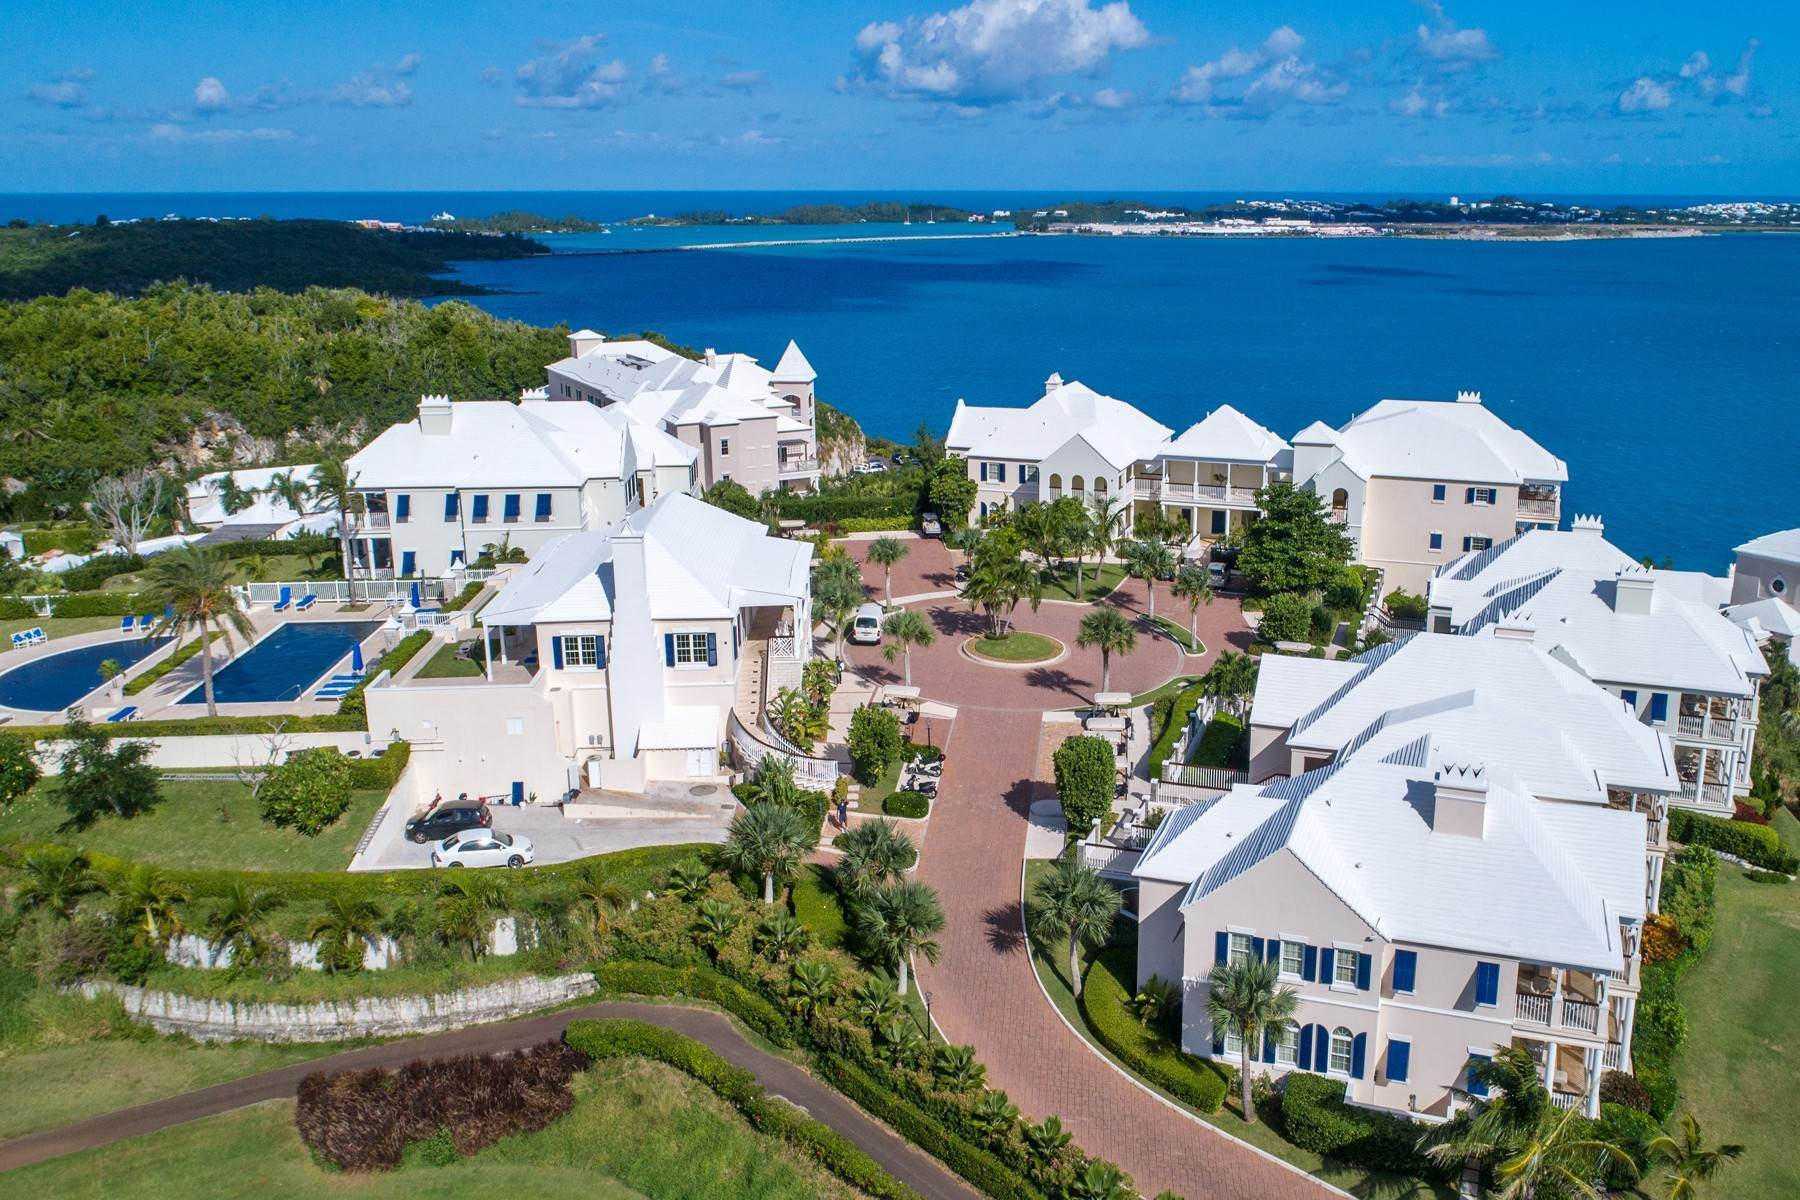 fractional ownership prop for Active at Tucker's Point Golf Villa - 3 Bedroom St Georges Parish, Bermuda Bermuda